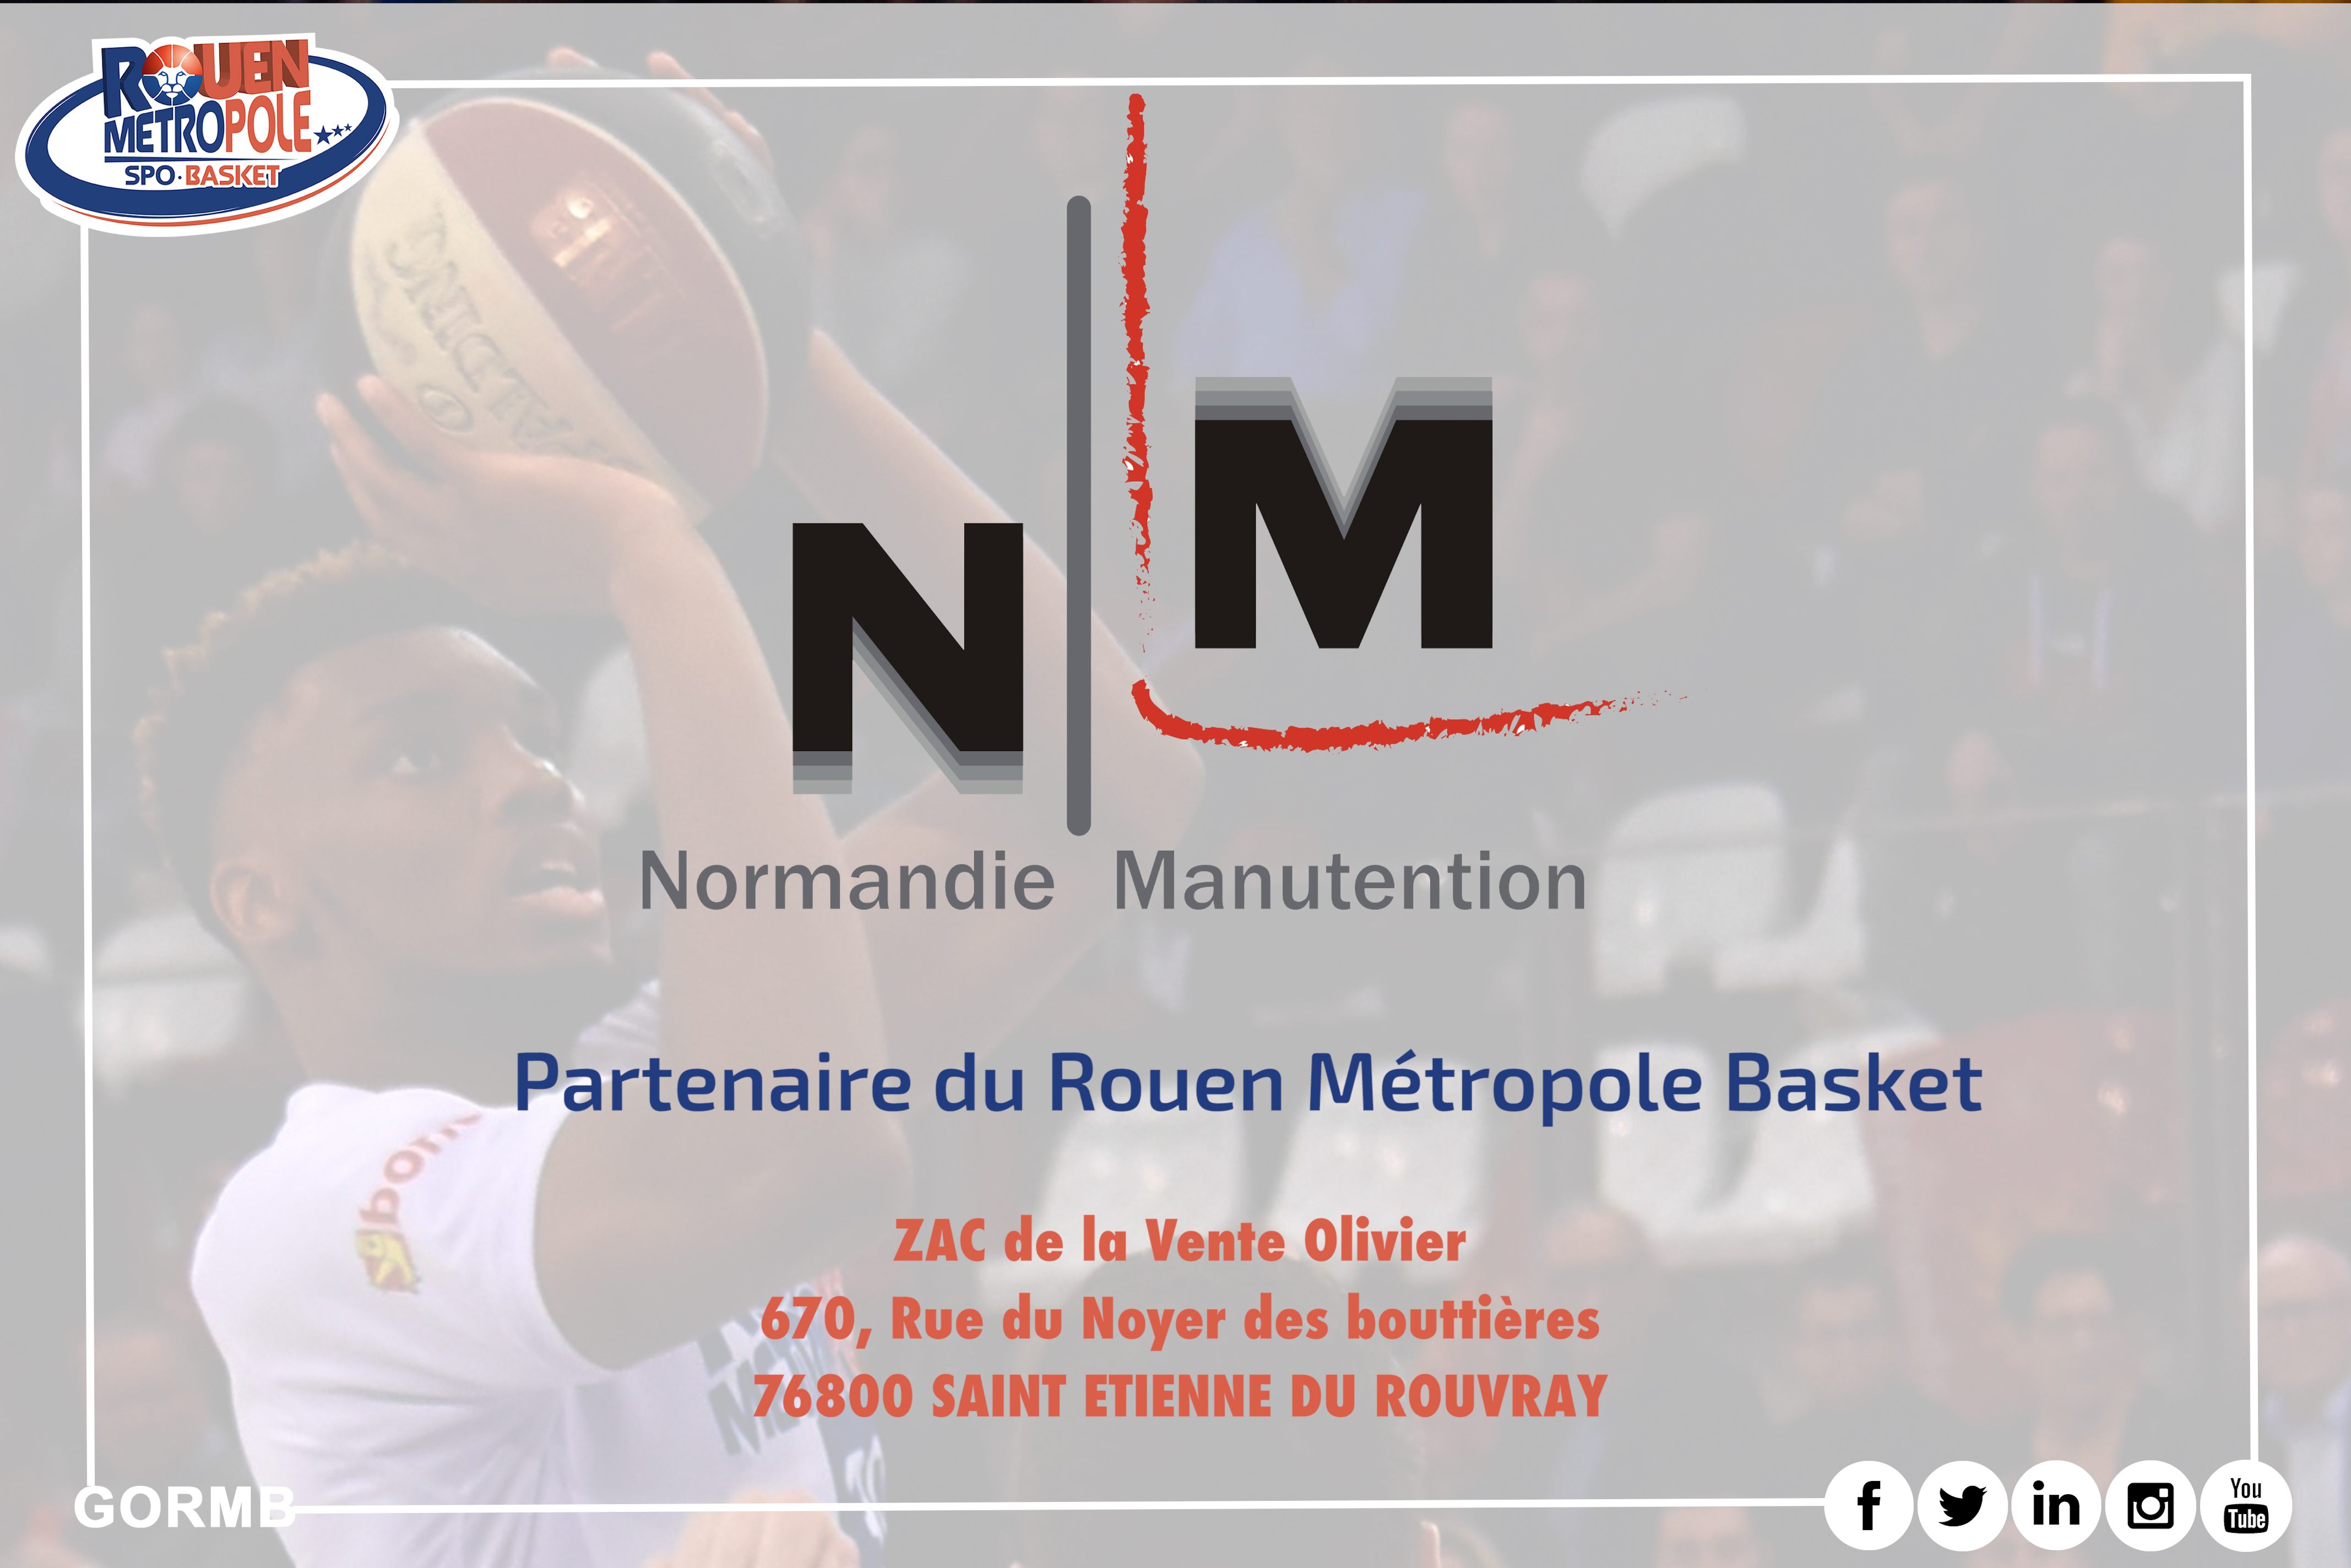 https://rouenmetrobasket.com/wp-content/uploads/2019/08/NORMANDIE-MANUTENTION.jpg